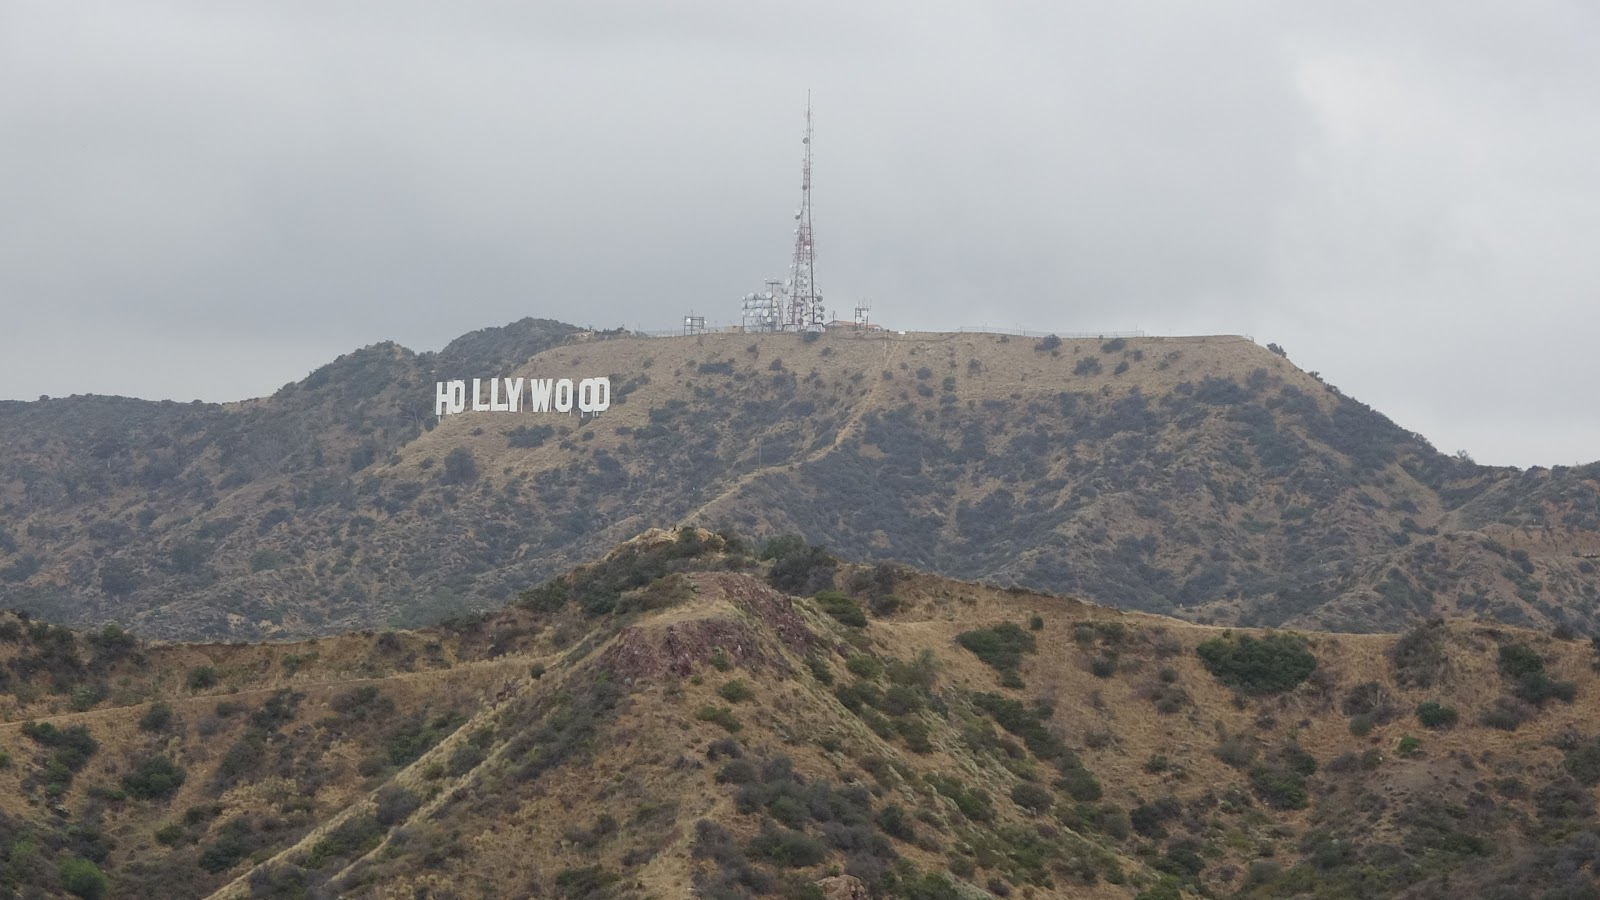 The Hollywood Sign Is One Of Los Angeles's Most Famous - Hollywood Sign , HD Wallpaper & Backgrounds